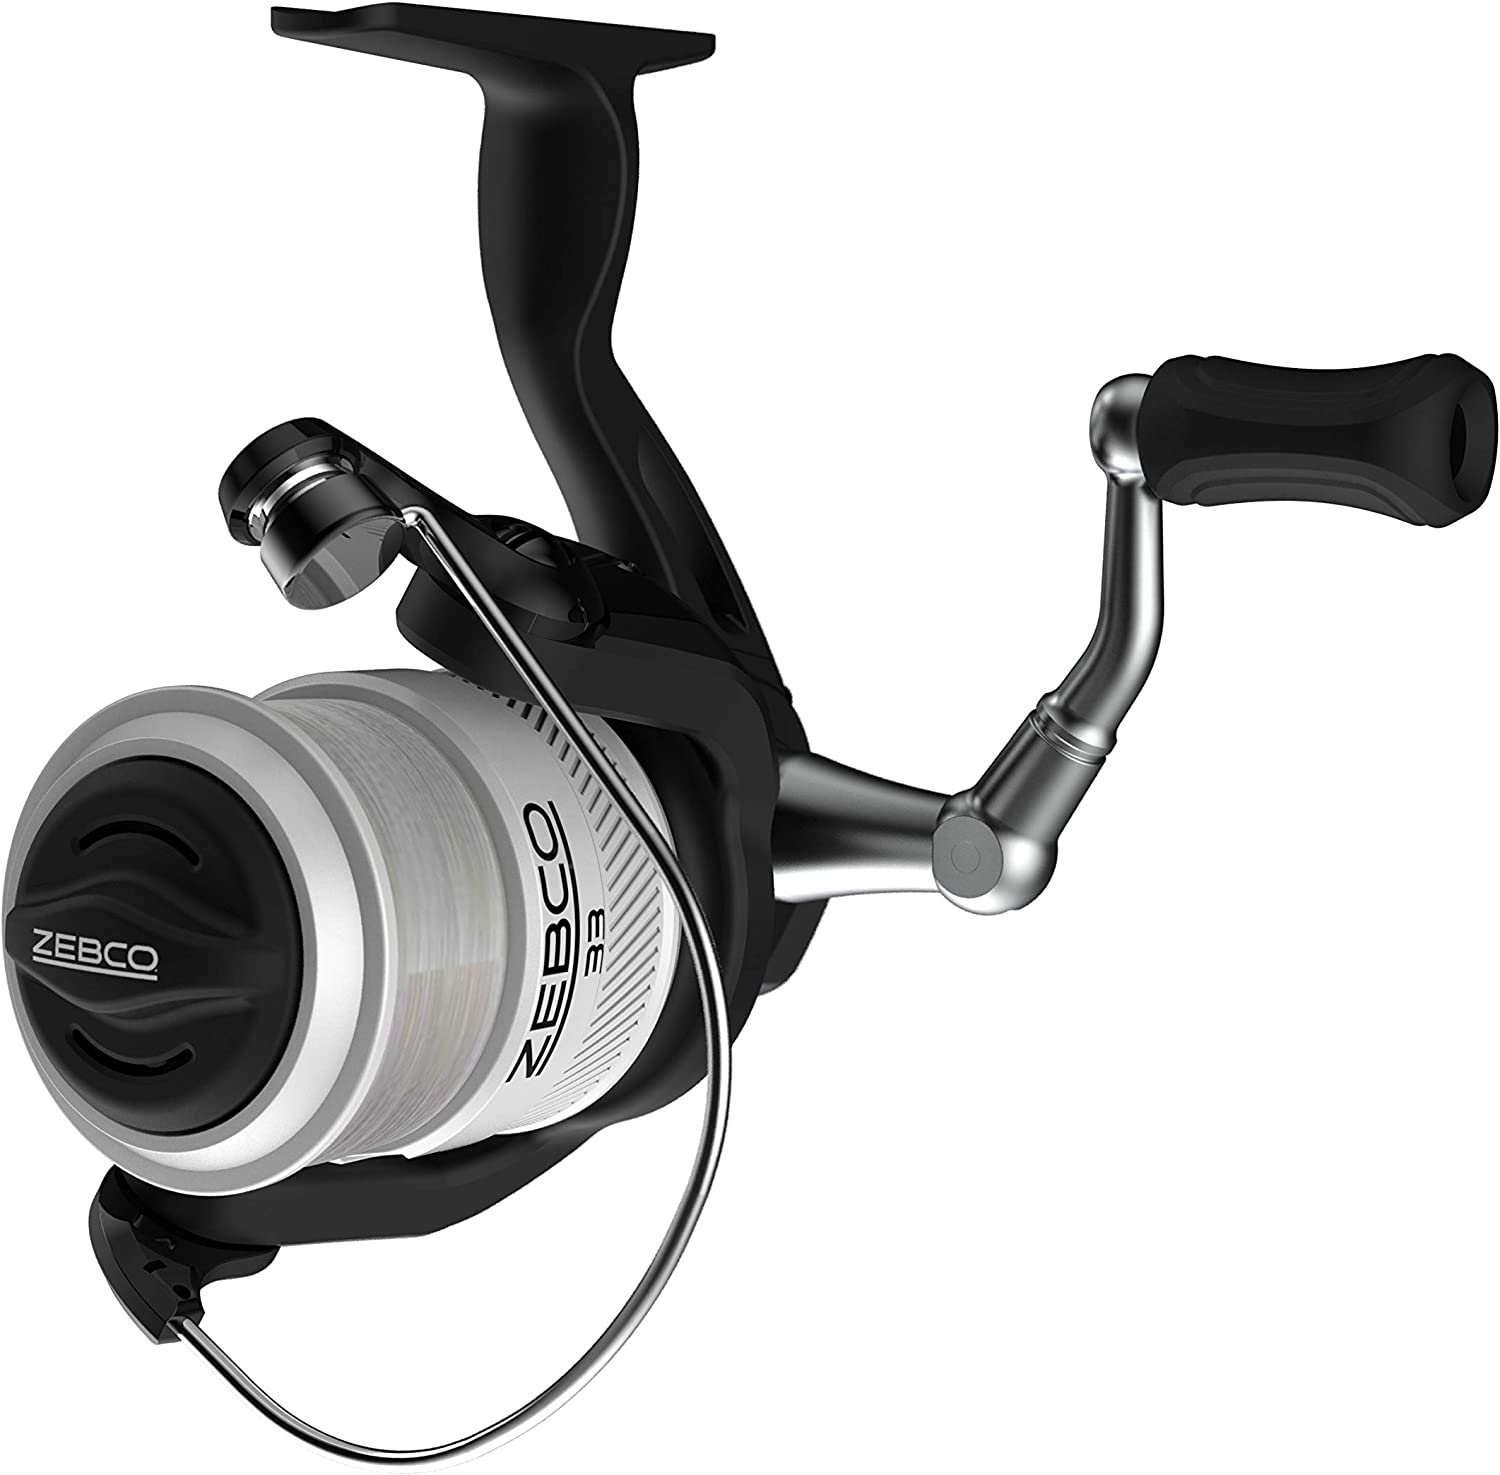 Zebco 33 Telescopic Spinning Reel and Fishing Rod Combo Convenient Telescoping Rod with a Pro-Style Handle Grip and Quickset Anti-Reverse Fishing Reel